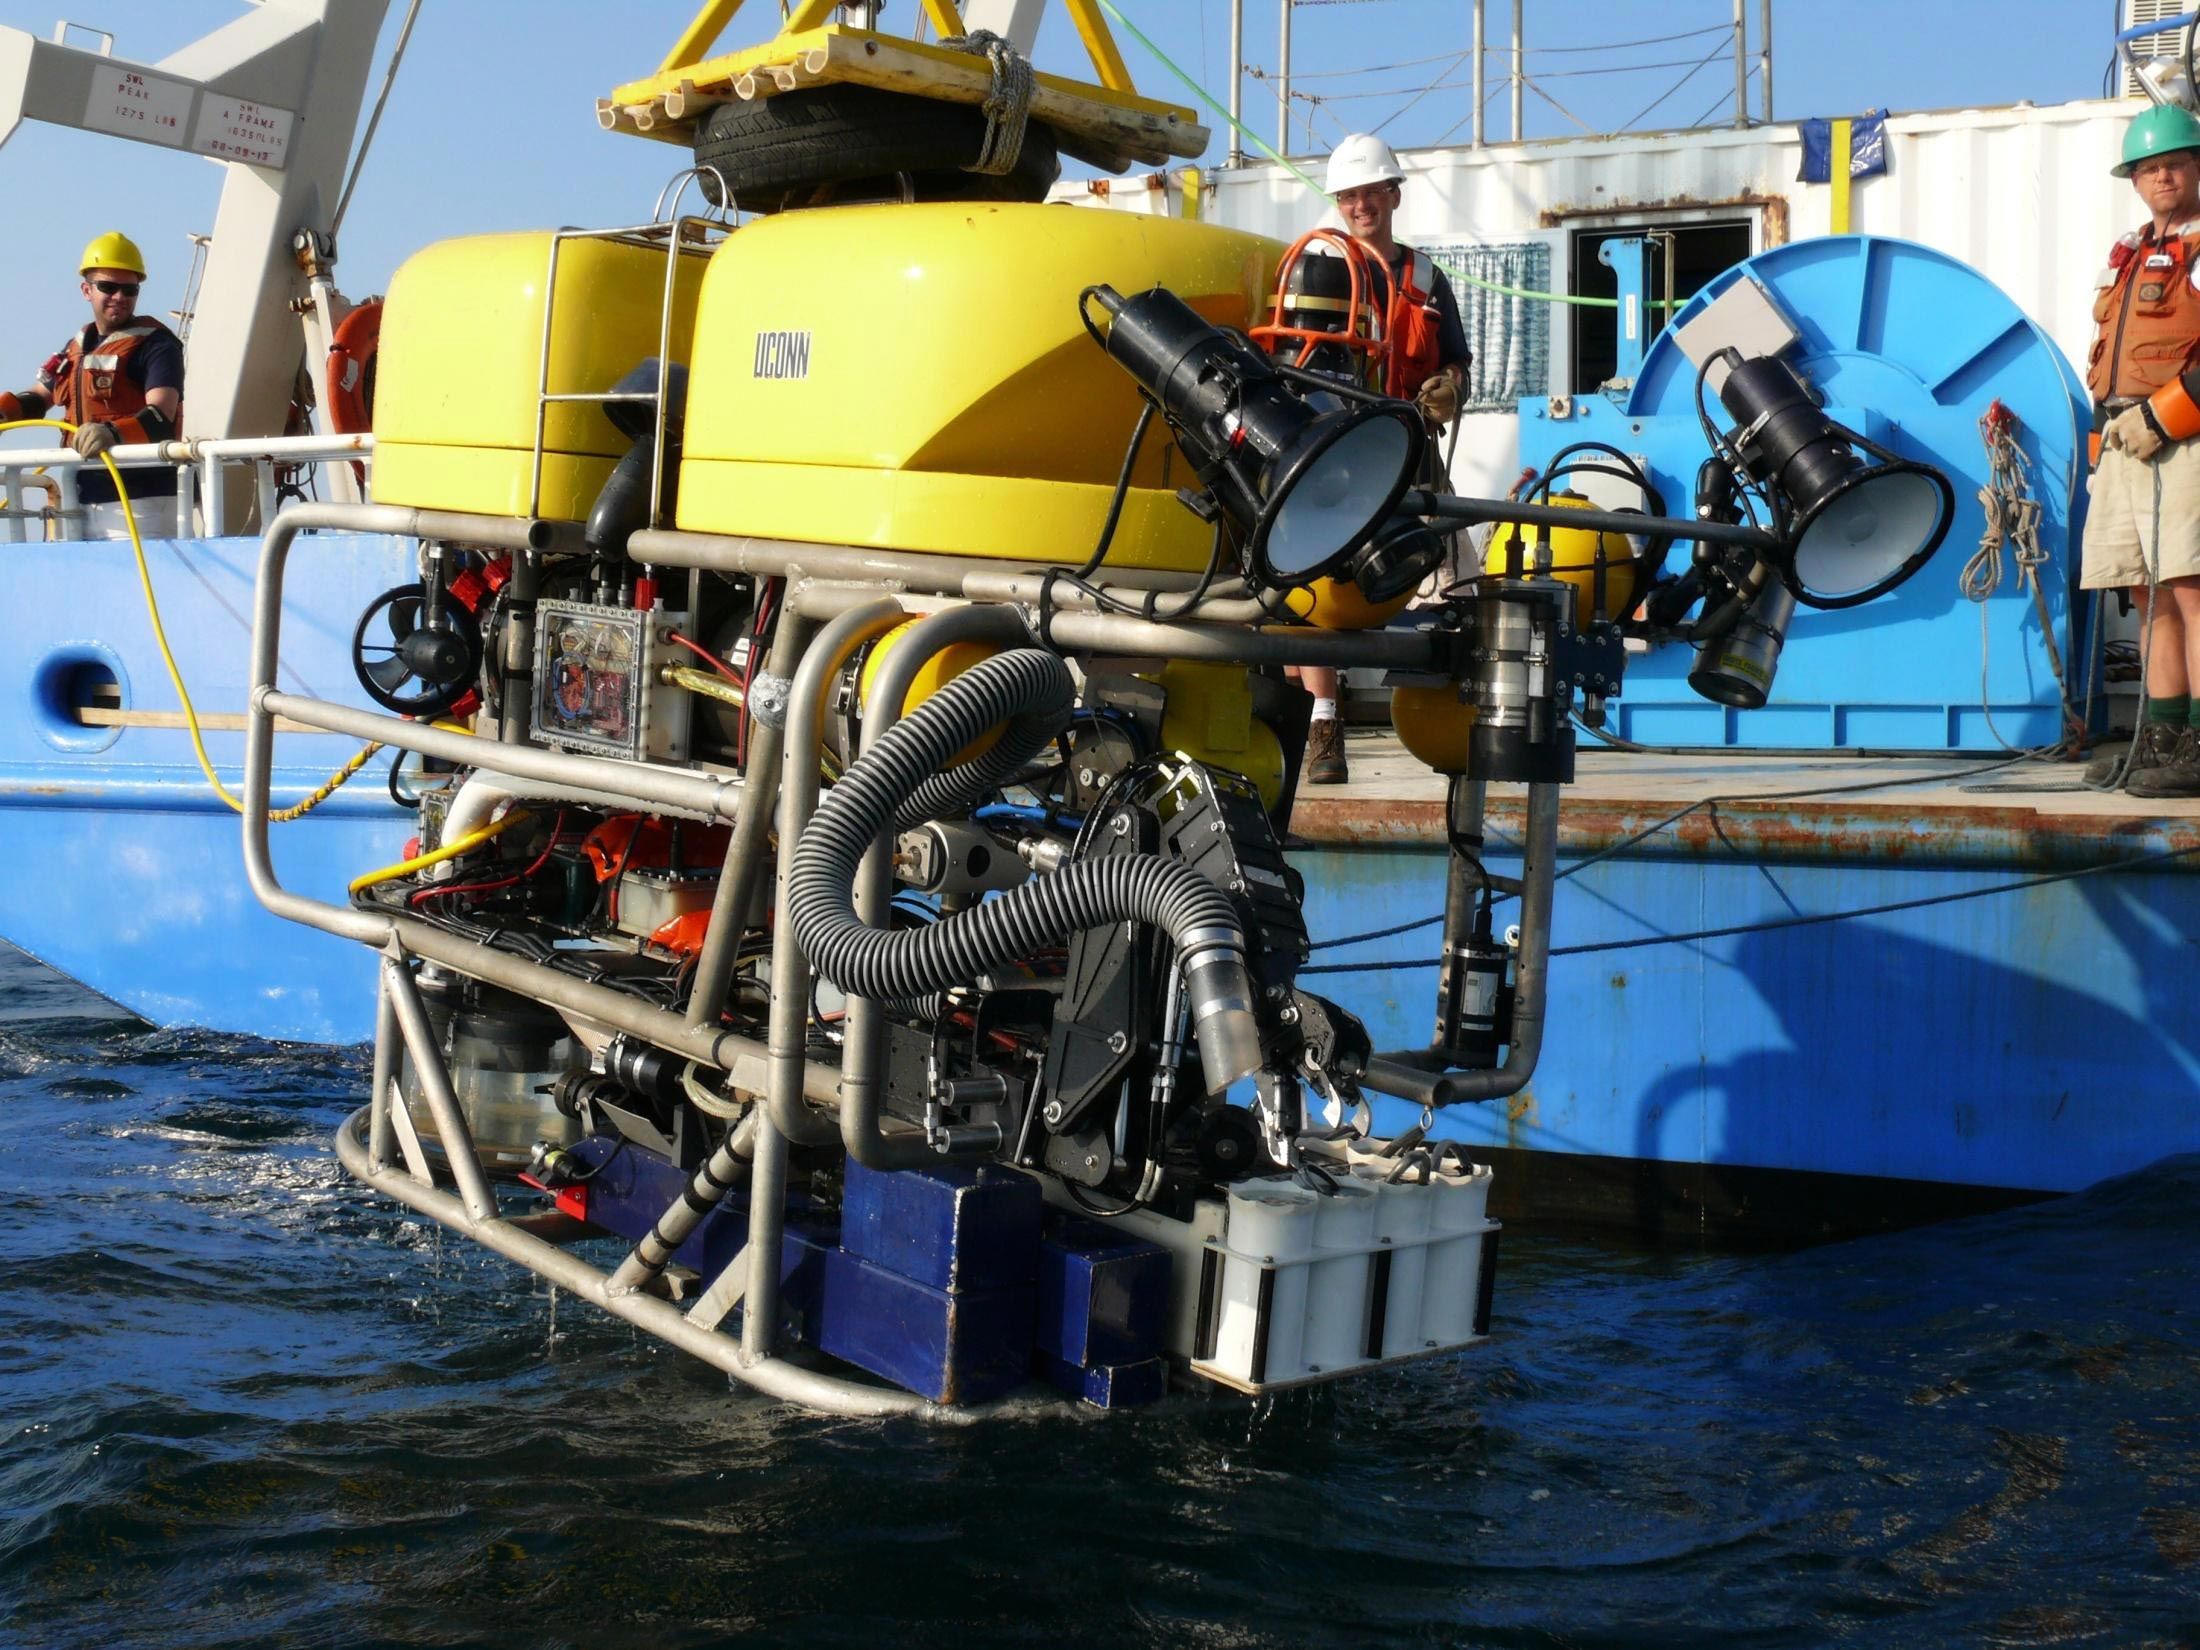 The Kraken 2 ROV leaves the ROV Connecticut research vessel and readies for a dive. (Photo courtesy of Peter Auster)